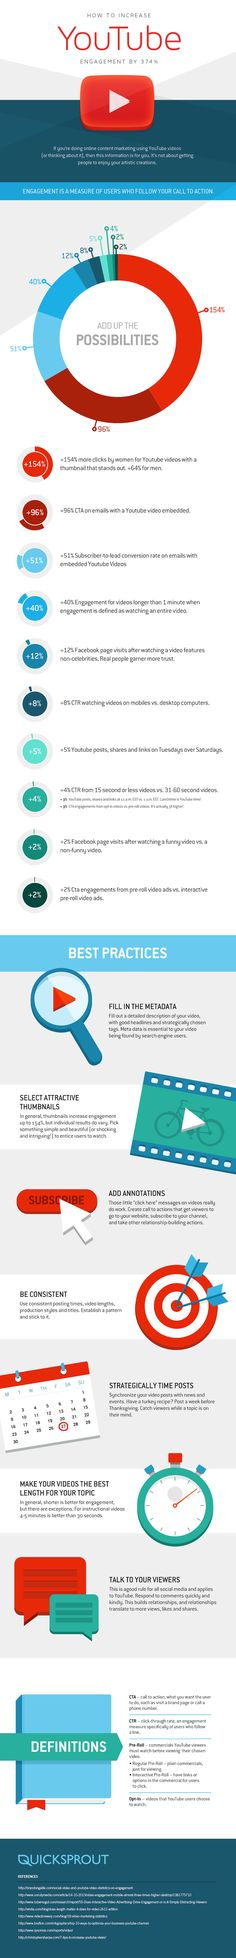 How to increase YouTube engagement by 374% #infographic #B2B #BuildingMaterials #Manufacturers